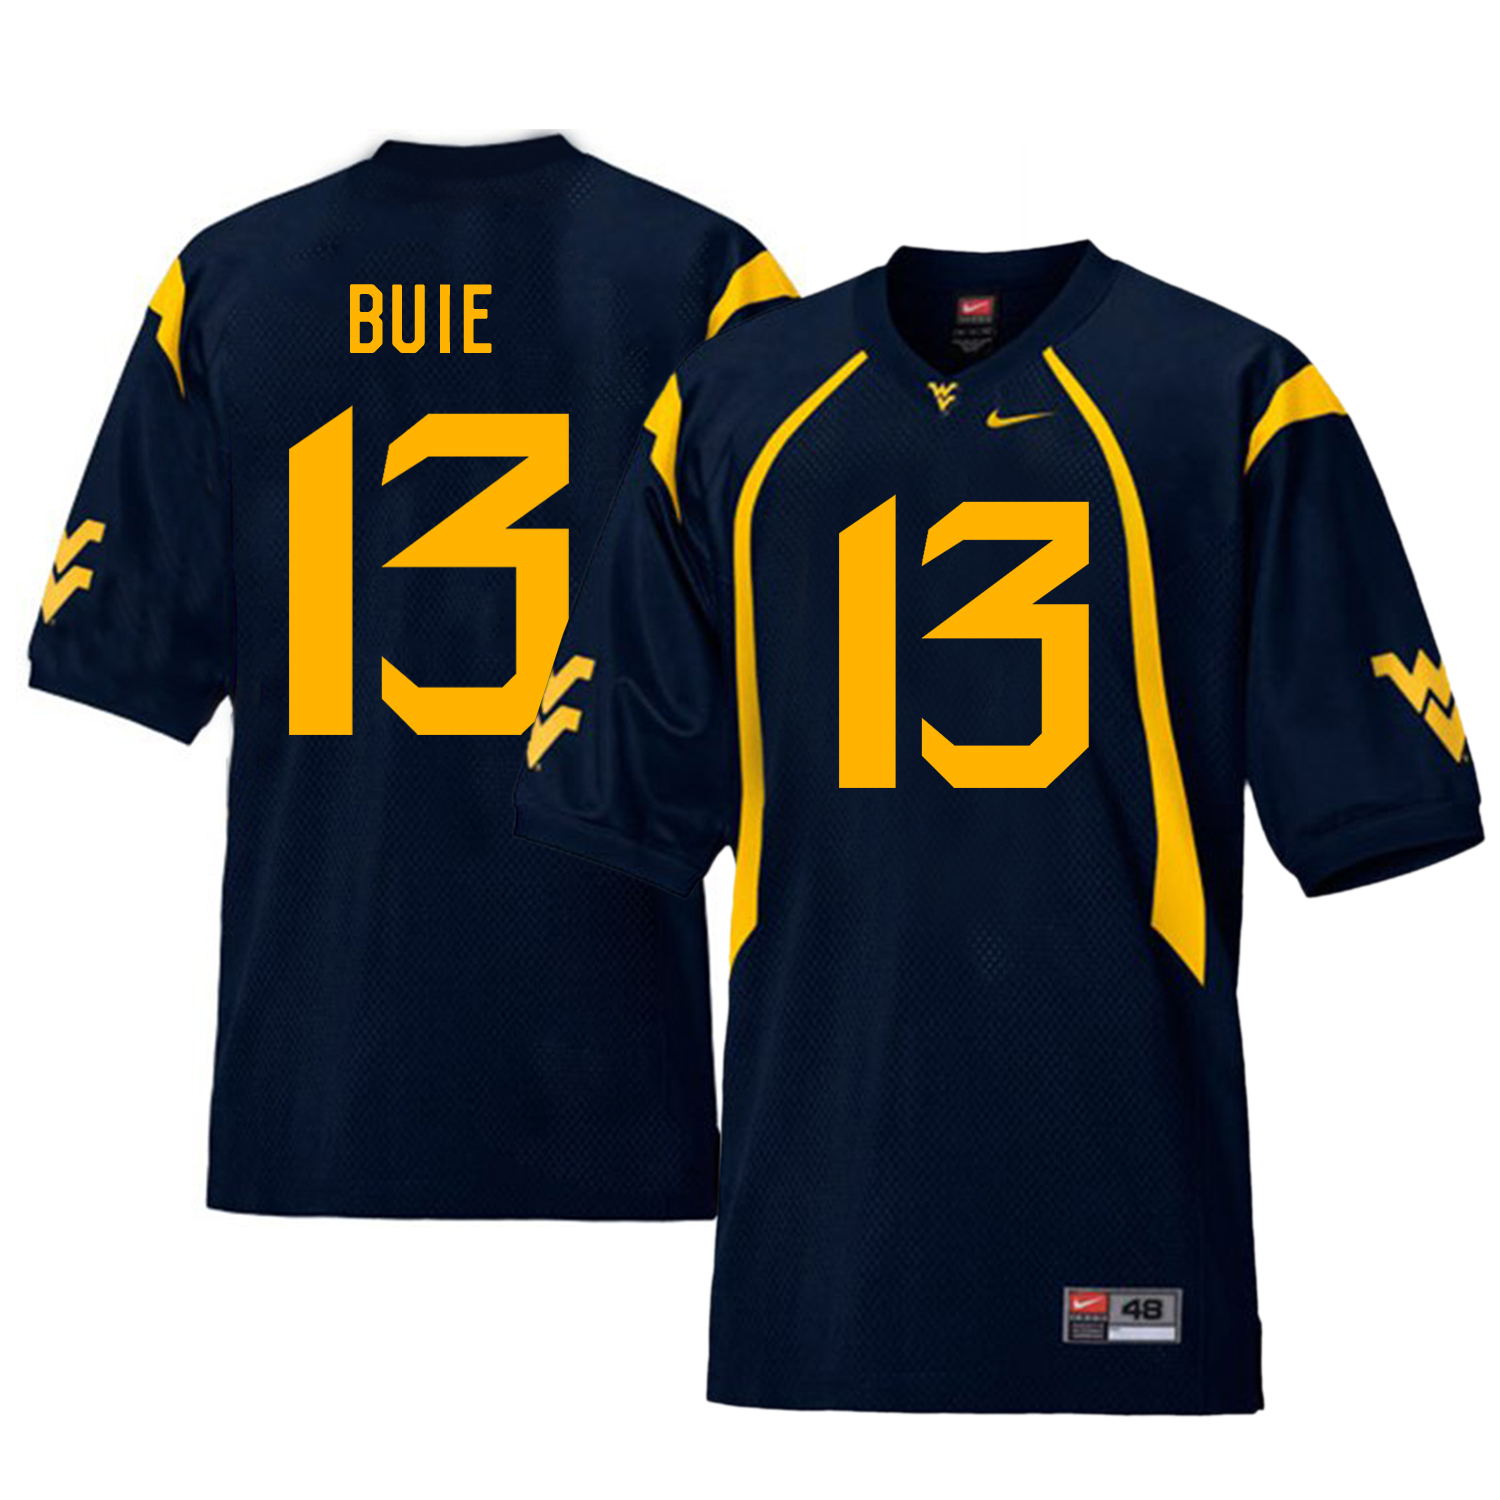 West Virginia Mountaineers 13 Andrew Buie Navy College Football Jersey